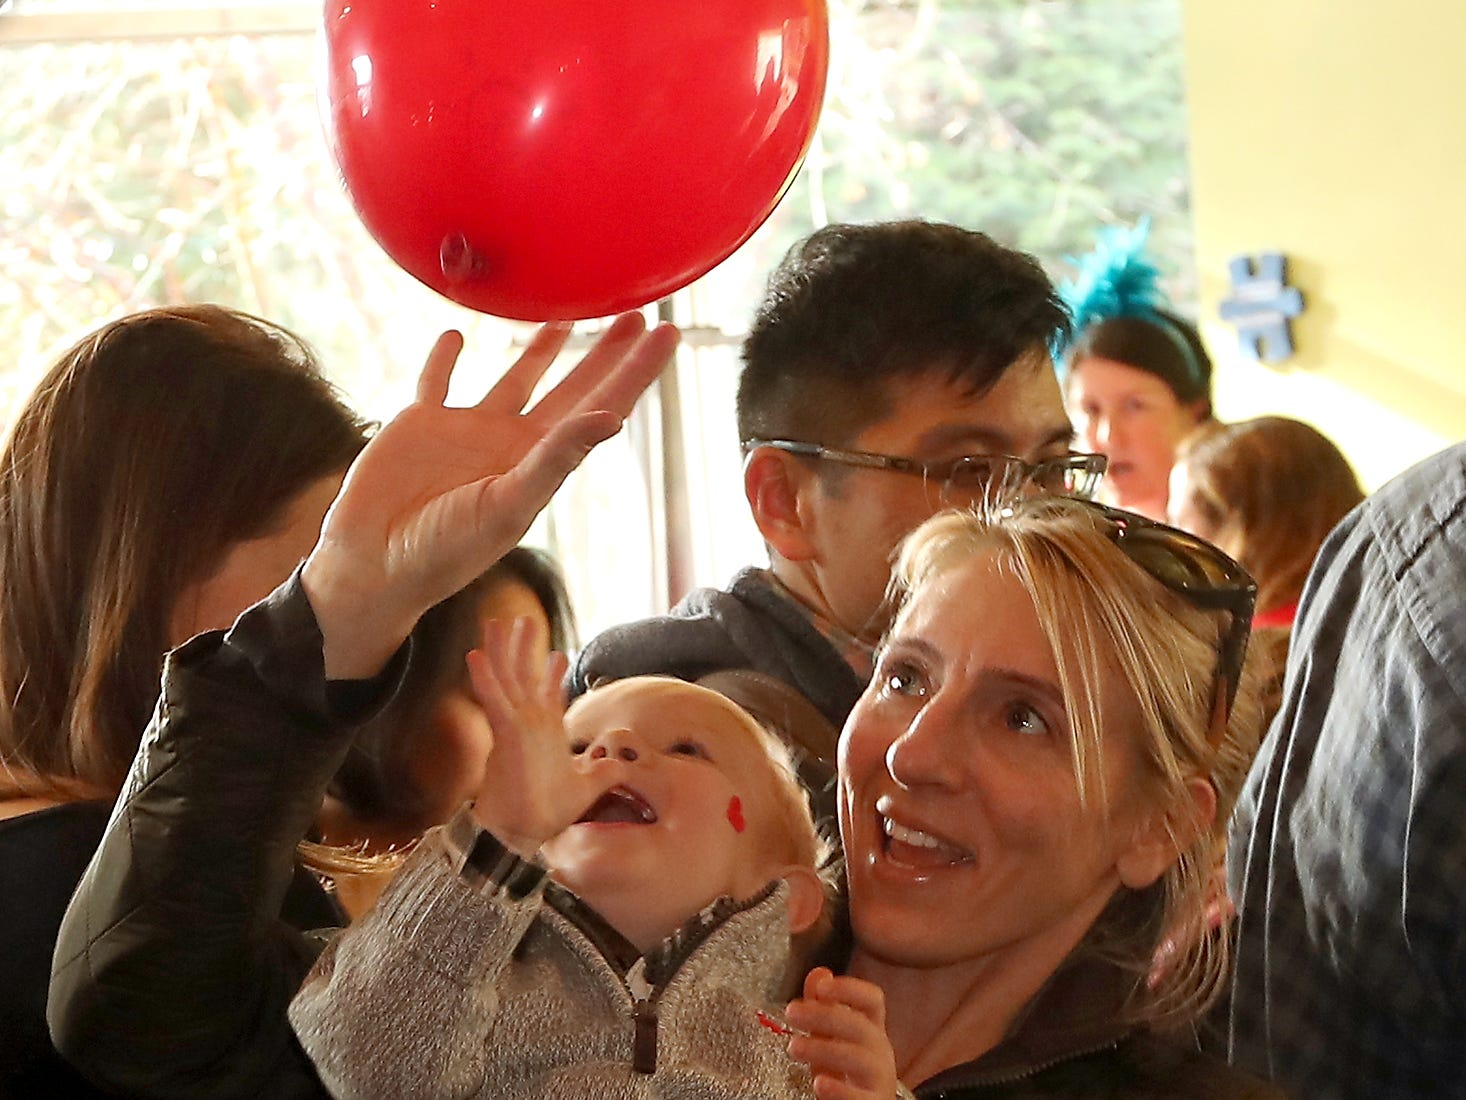 Ashley Hankins taps a balloon into the air as 20-month-old son Roman Fryer laughs while they ring in 2019 with the Noon Years Eve party at Bainbridge Island's KiDiMu (Kids Discovery Museum) on Monday, December 31, 2018.